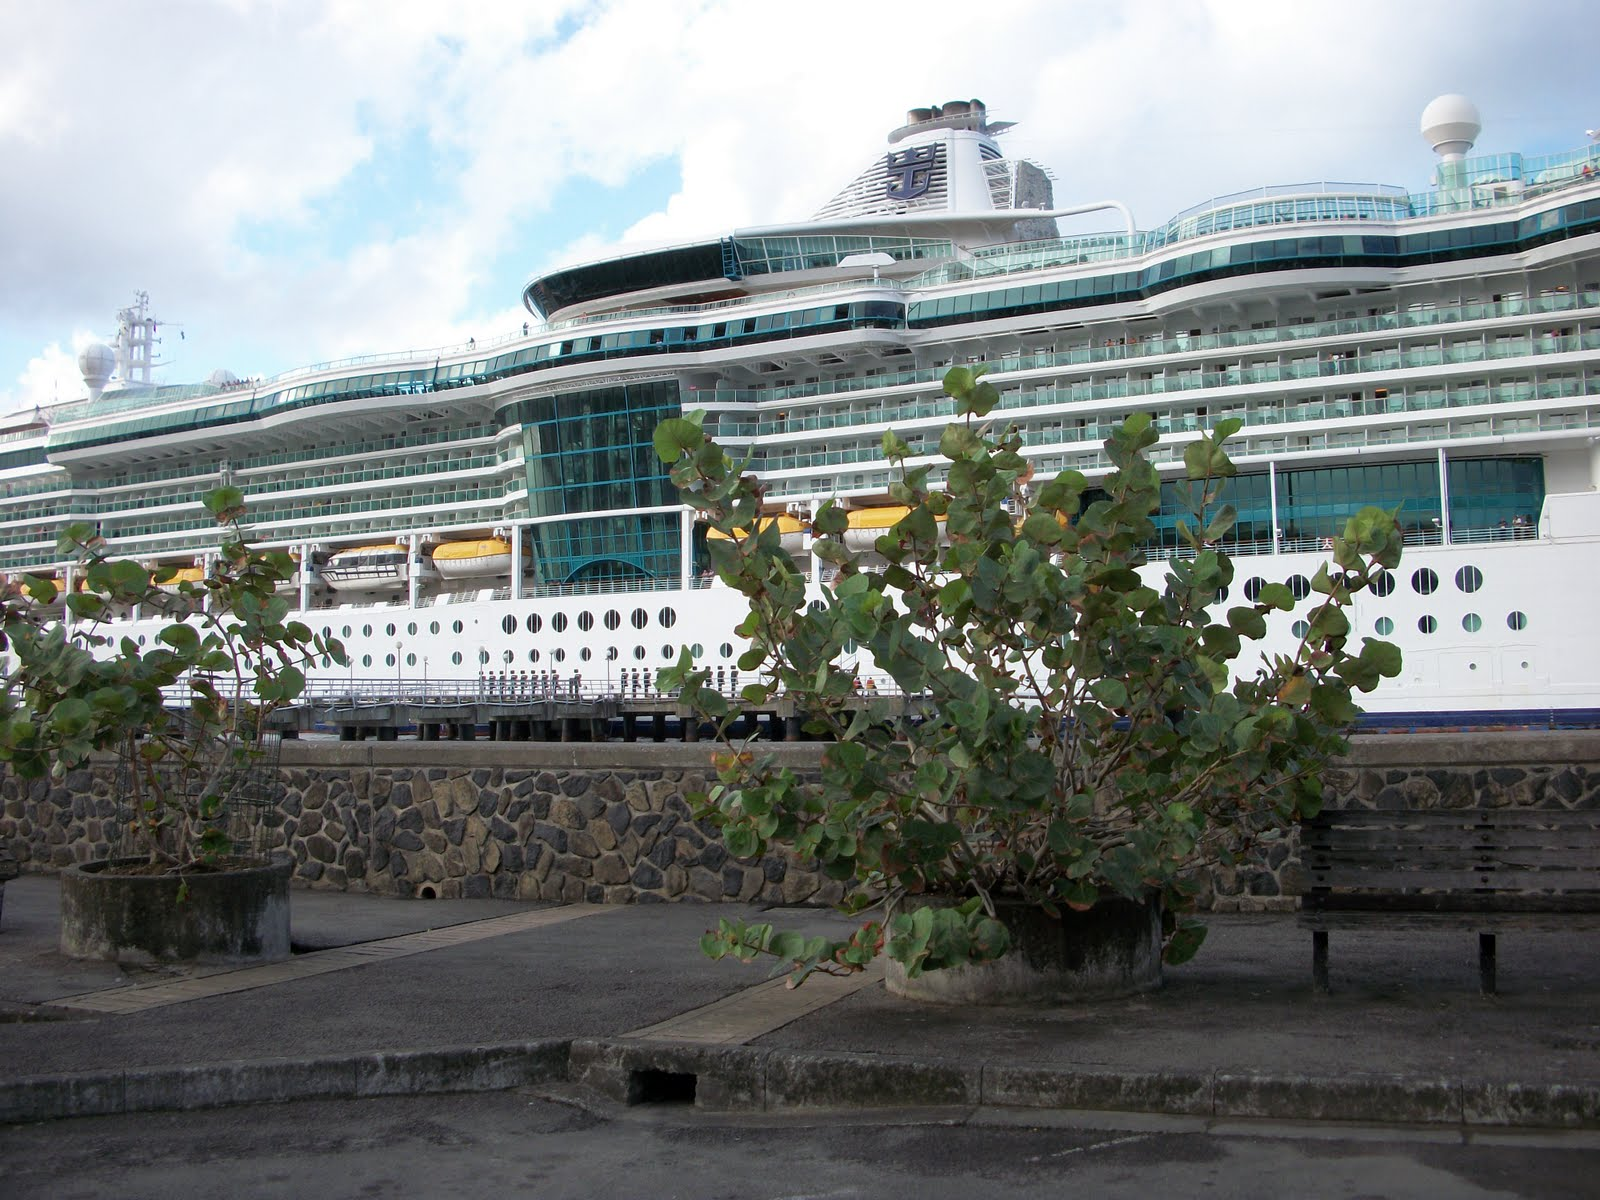 Royal caribbean cruise pictures